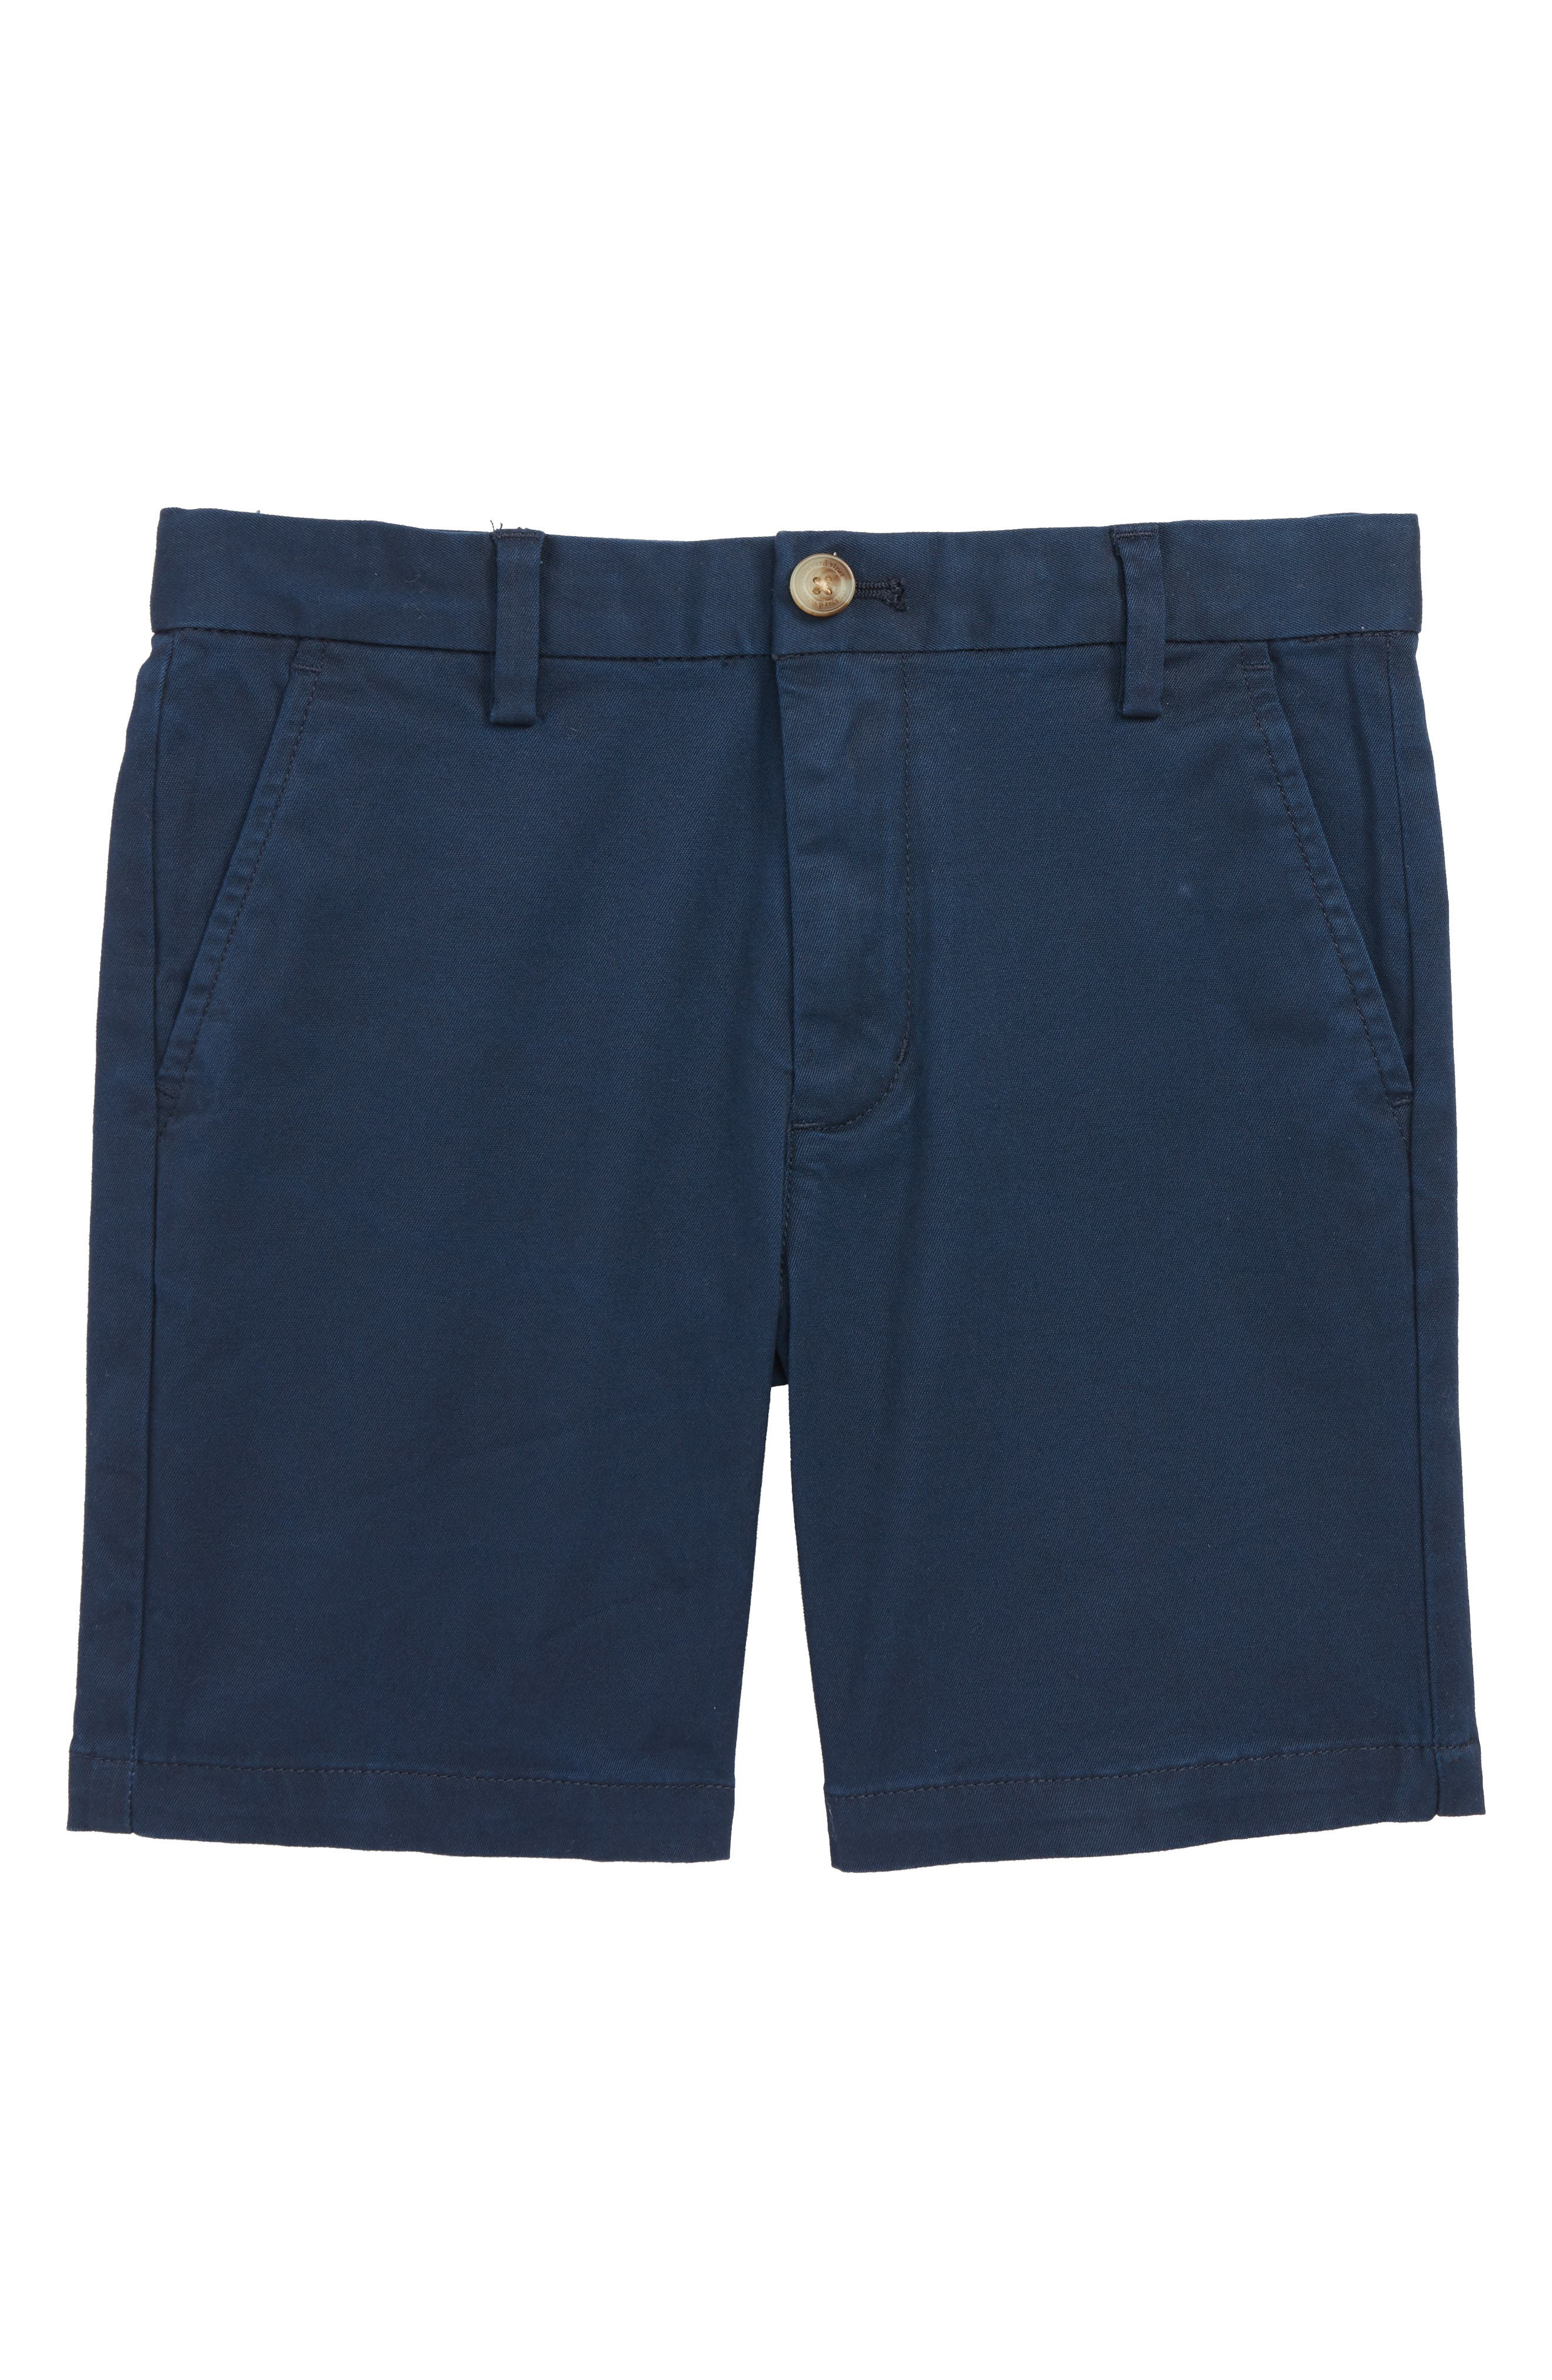 Stretch Breaker Shorts,                         Main,                         color, VINEYARD NAVY